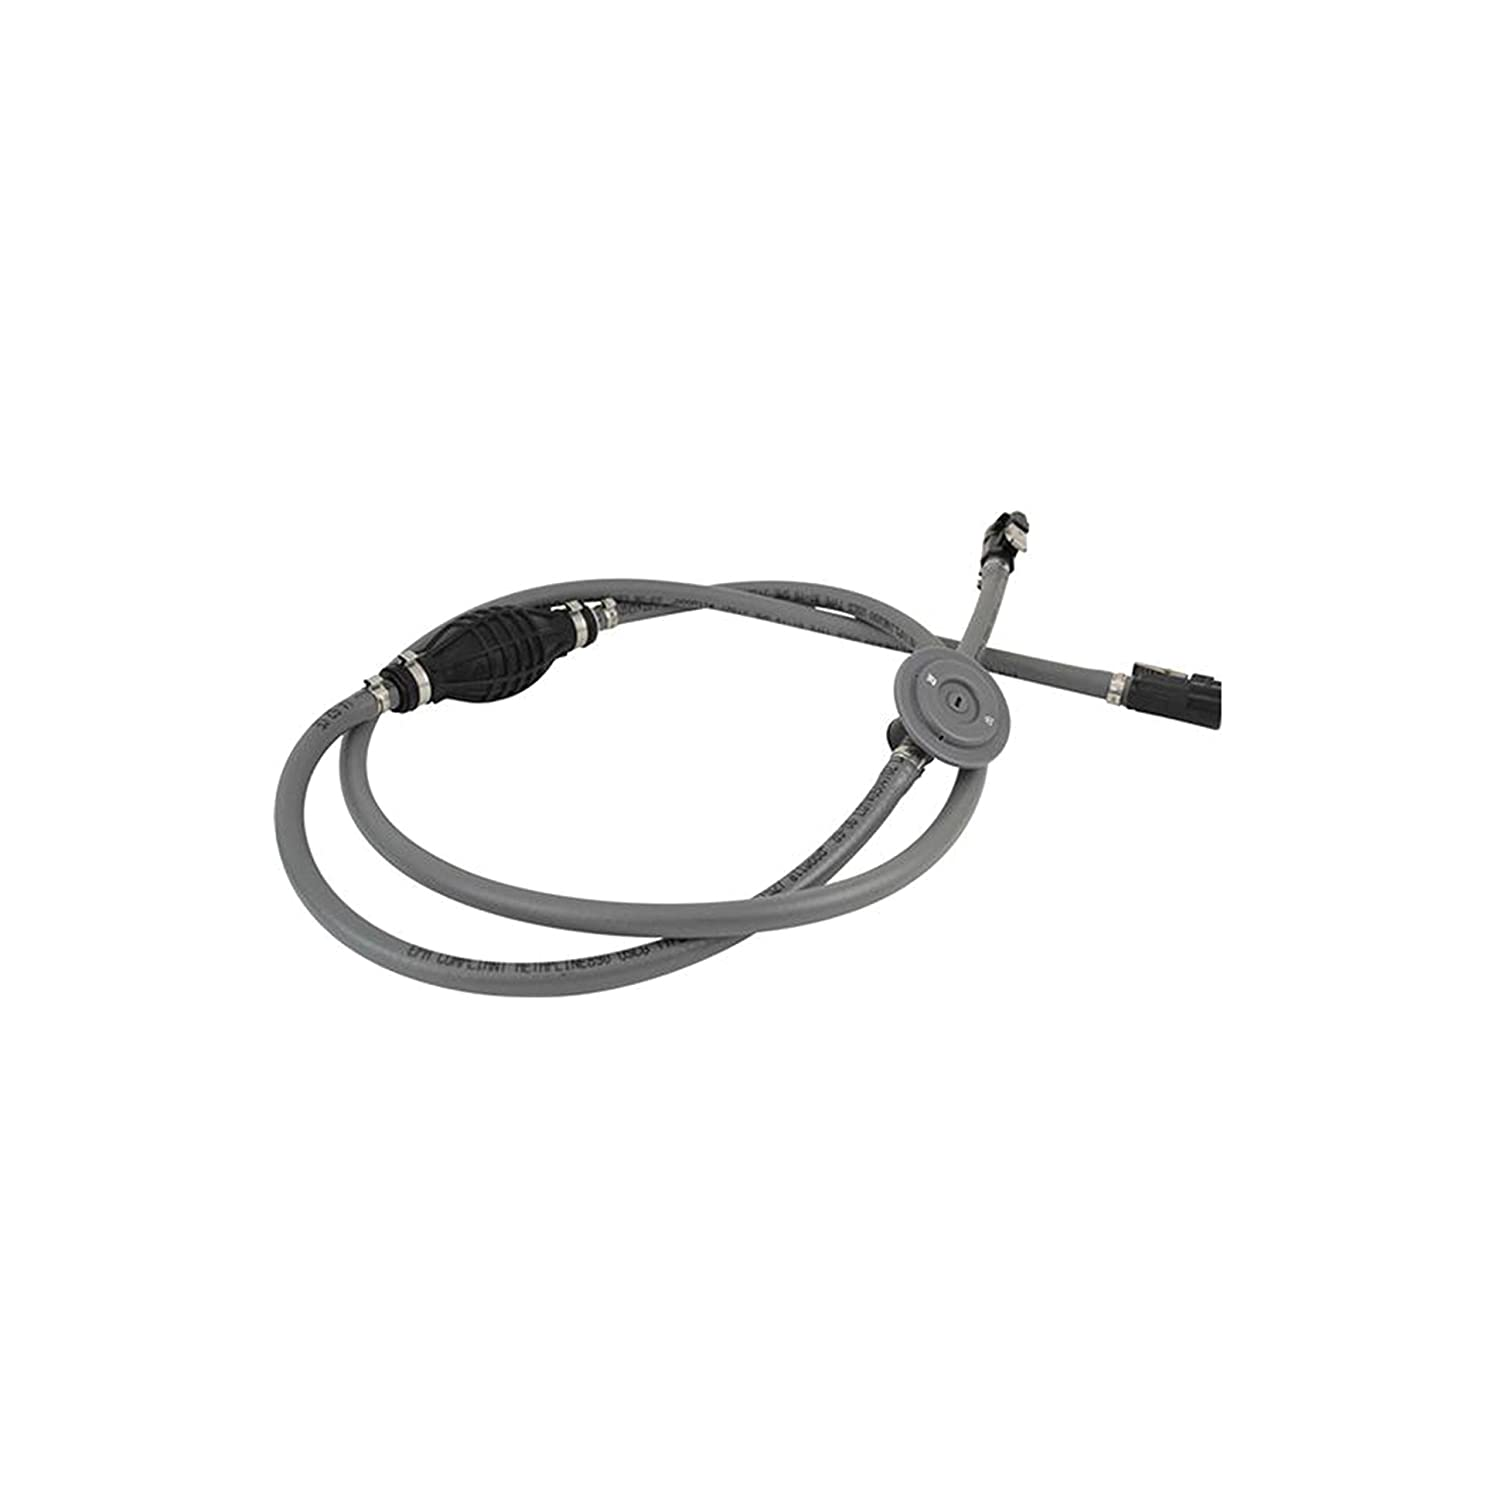 93806MUS7 Atwood Fuel Line kit 3005.0798